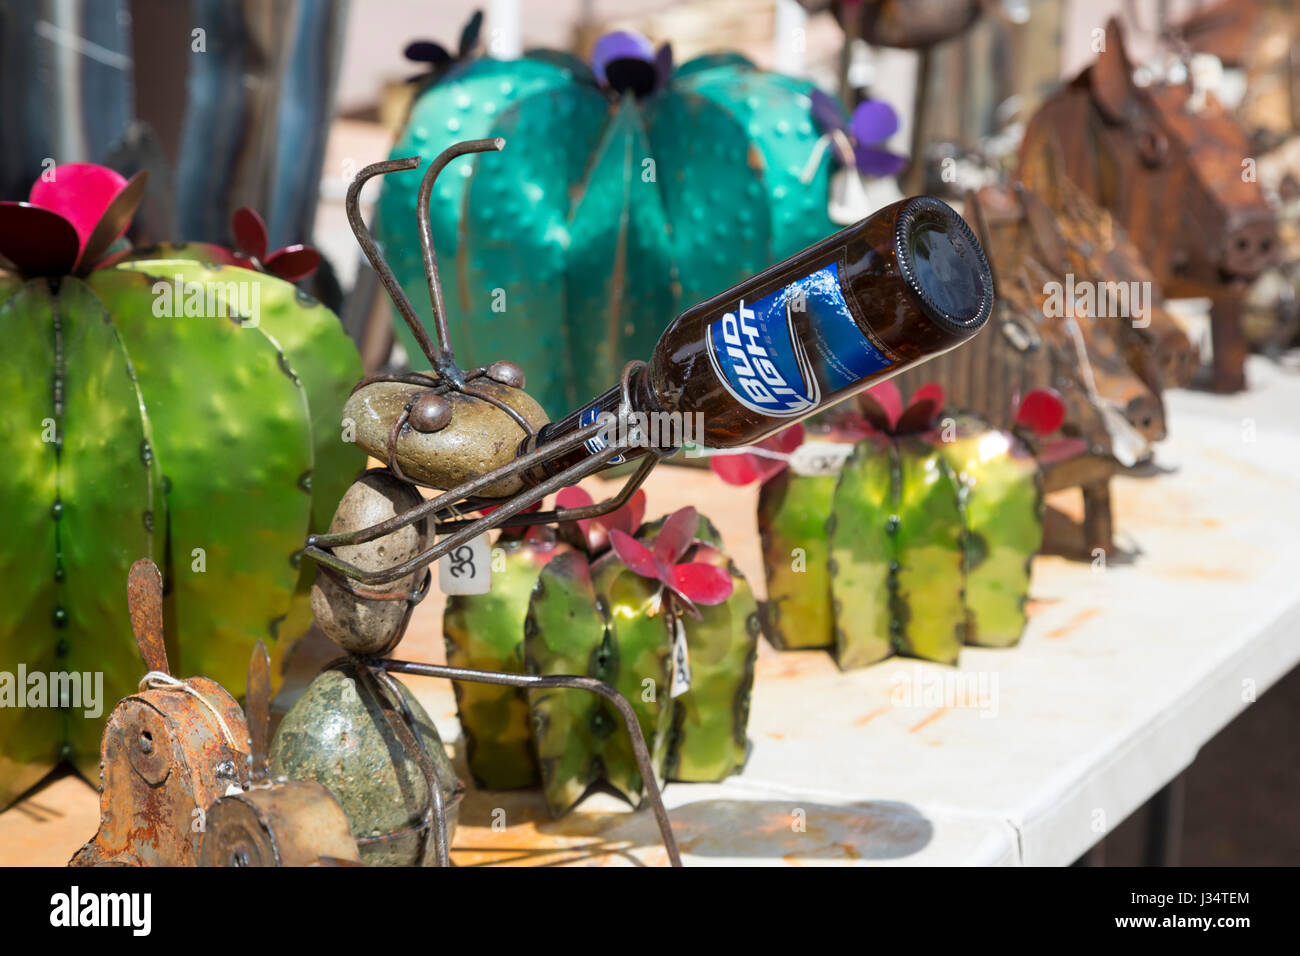 Tubac, Arizona - Arts and crafts displayed for sale in a southern Arizona artists' colony. - Stock Image